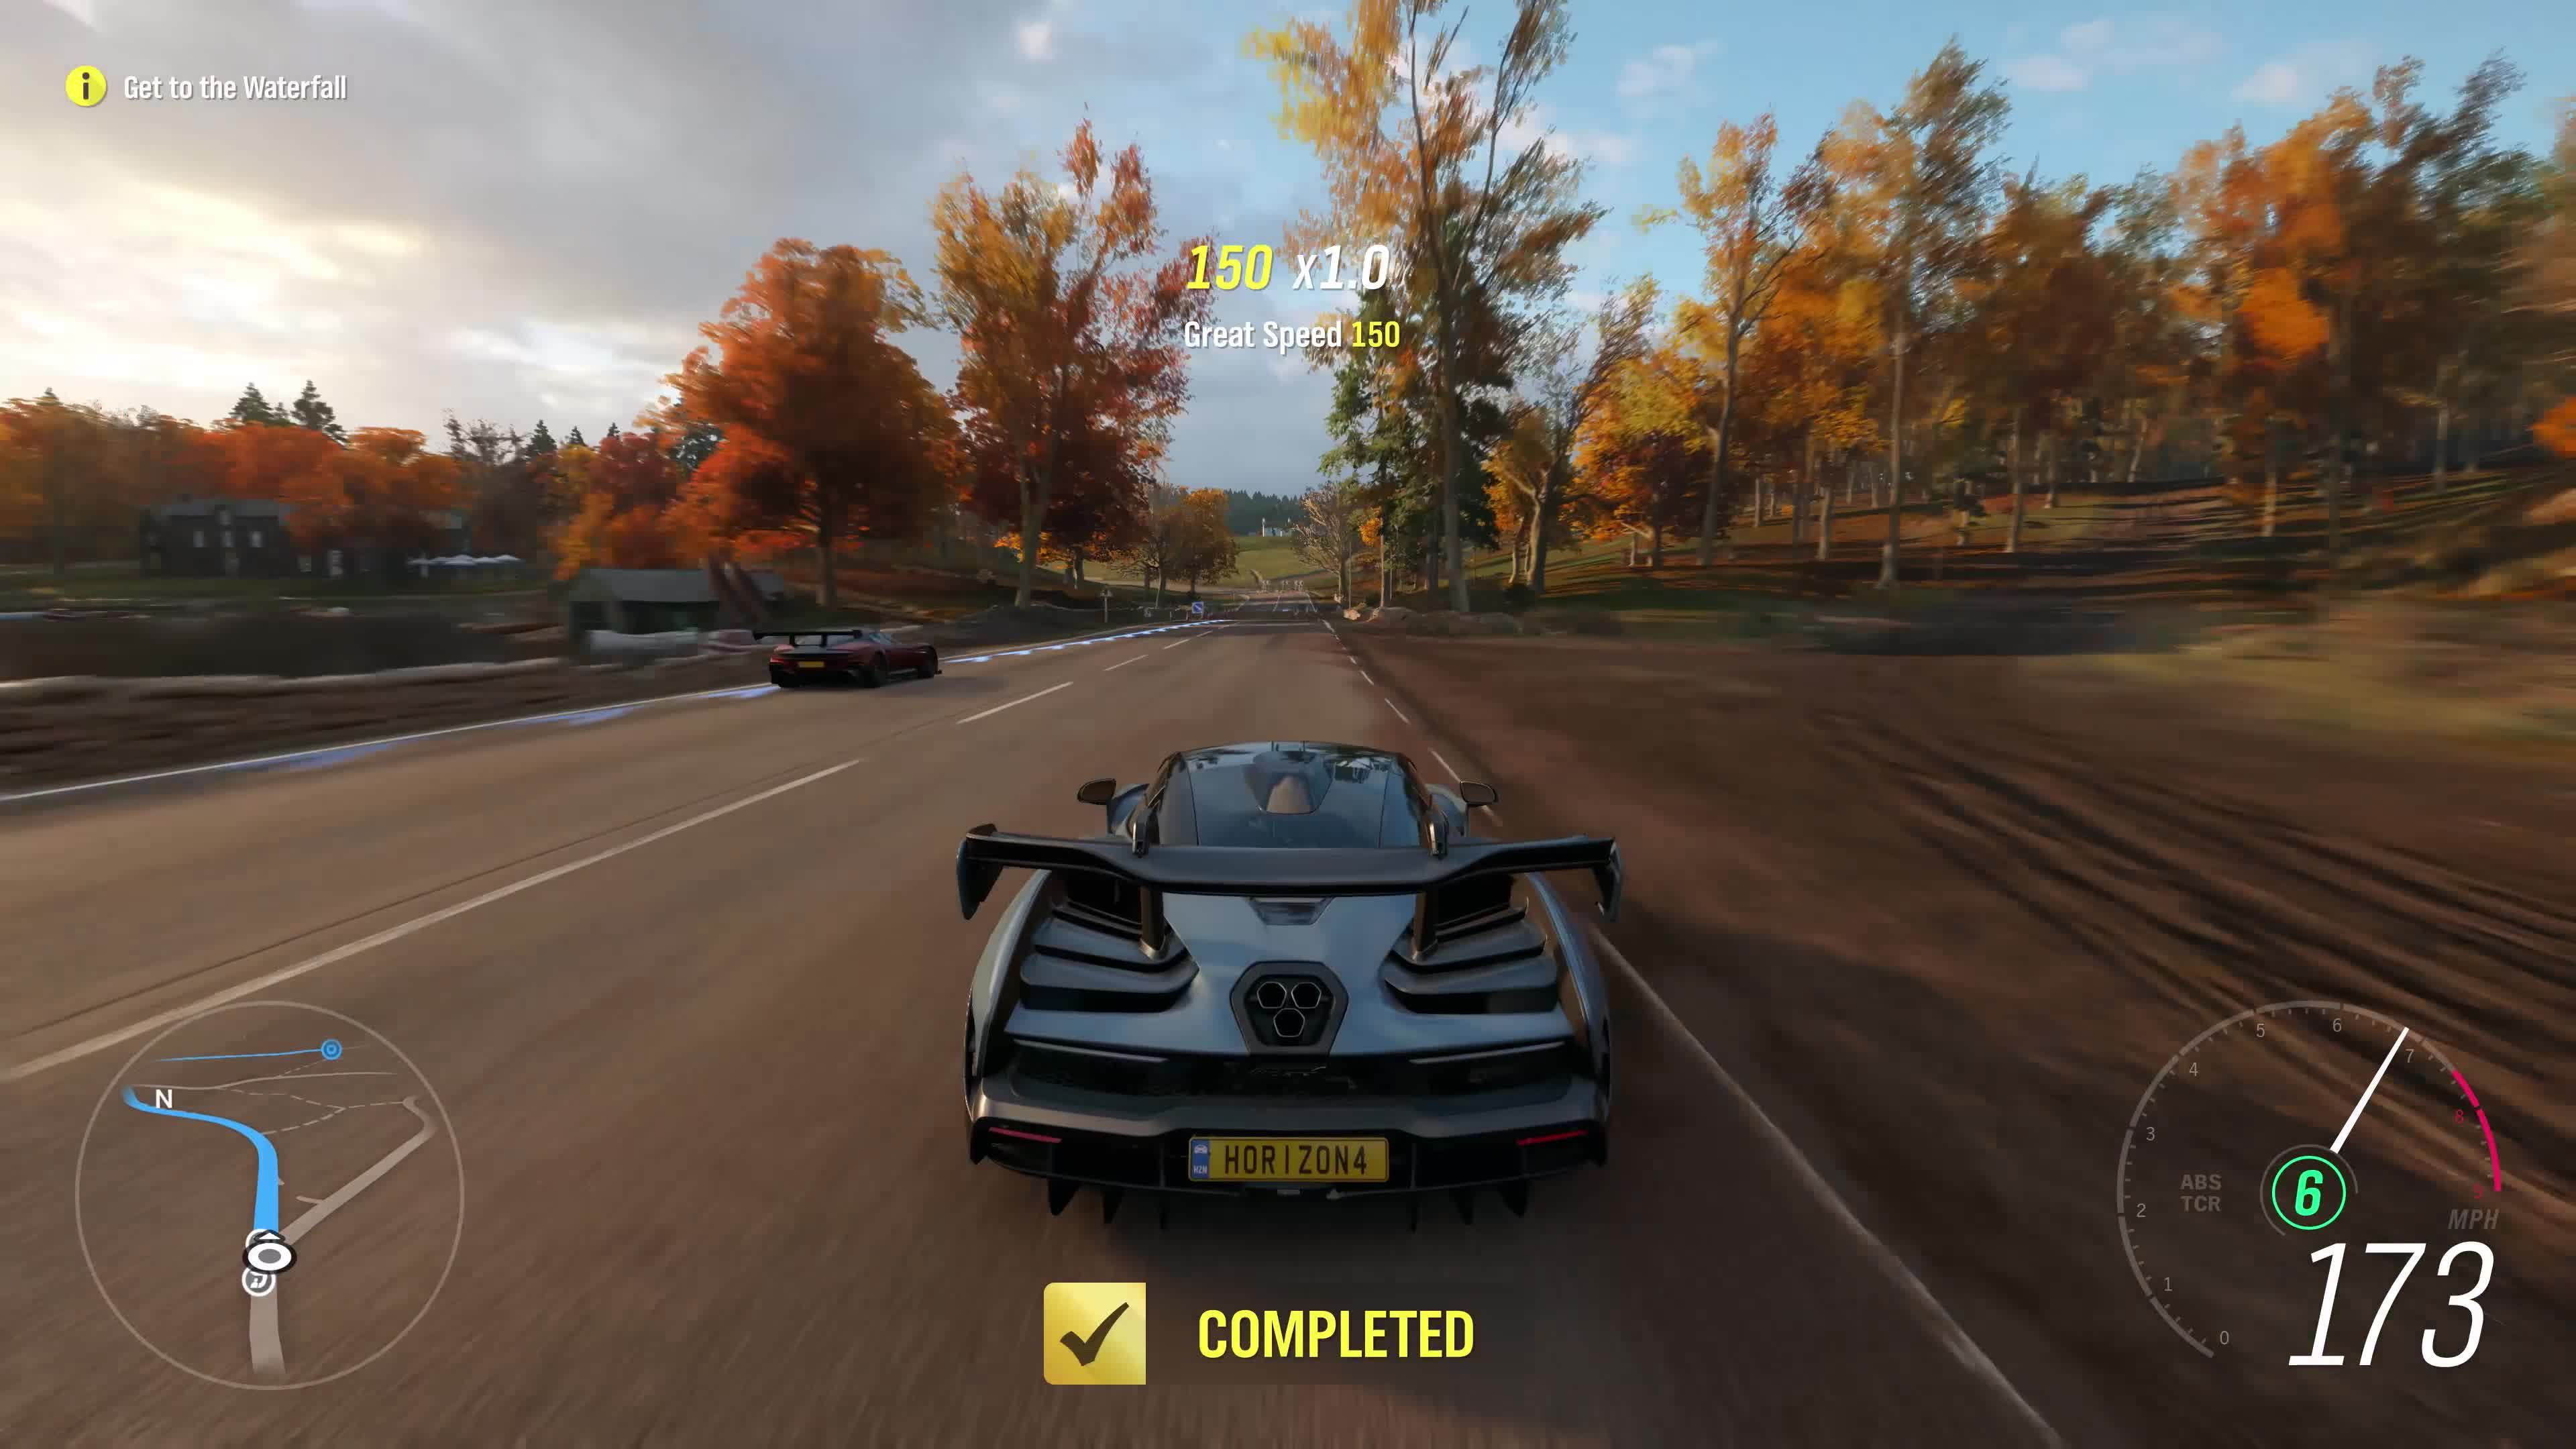 Forza Horizon 4 Gameplay Five Key Takeaways From E3 2018